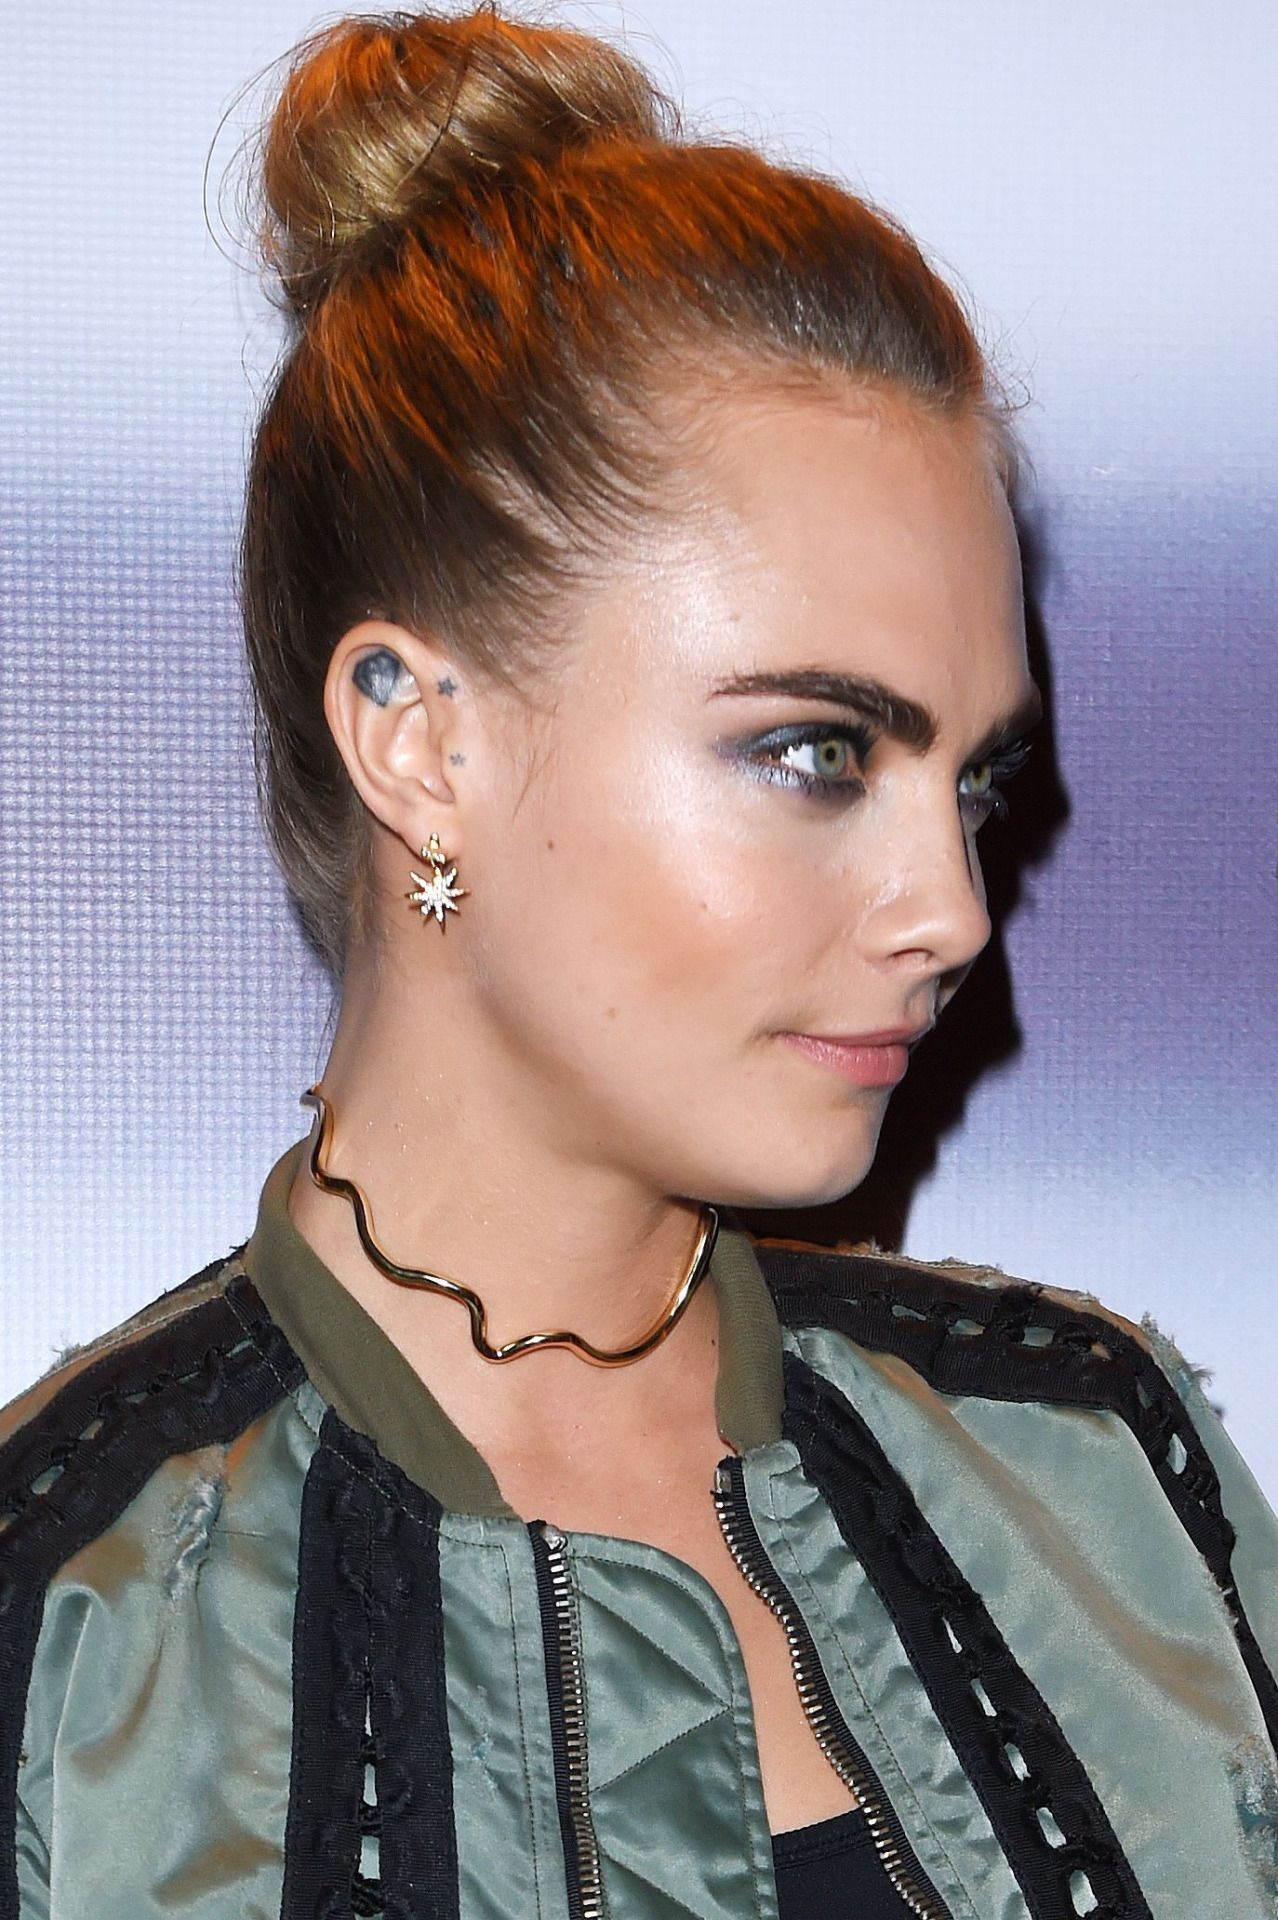 Find this Pin and more on Cara Delevingne by shaksinc.